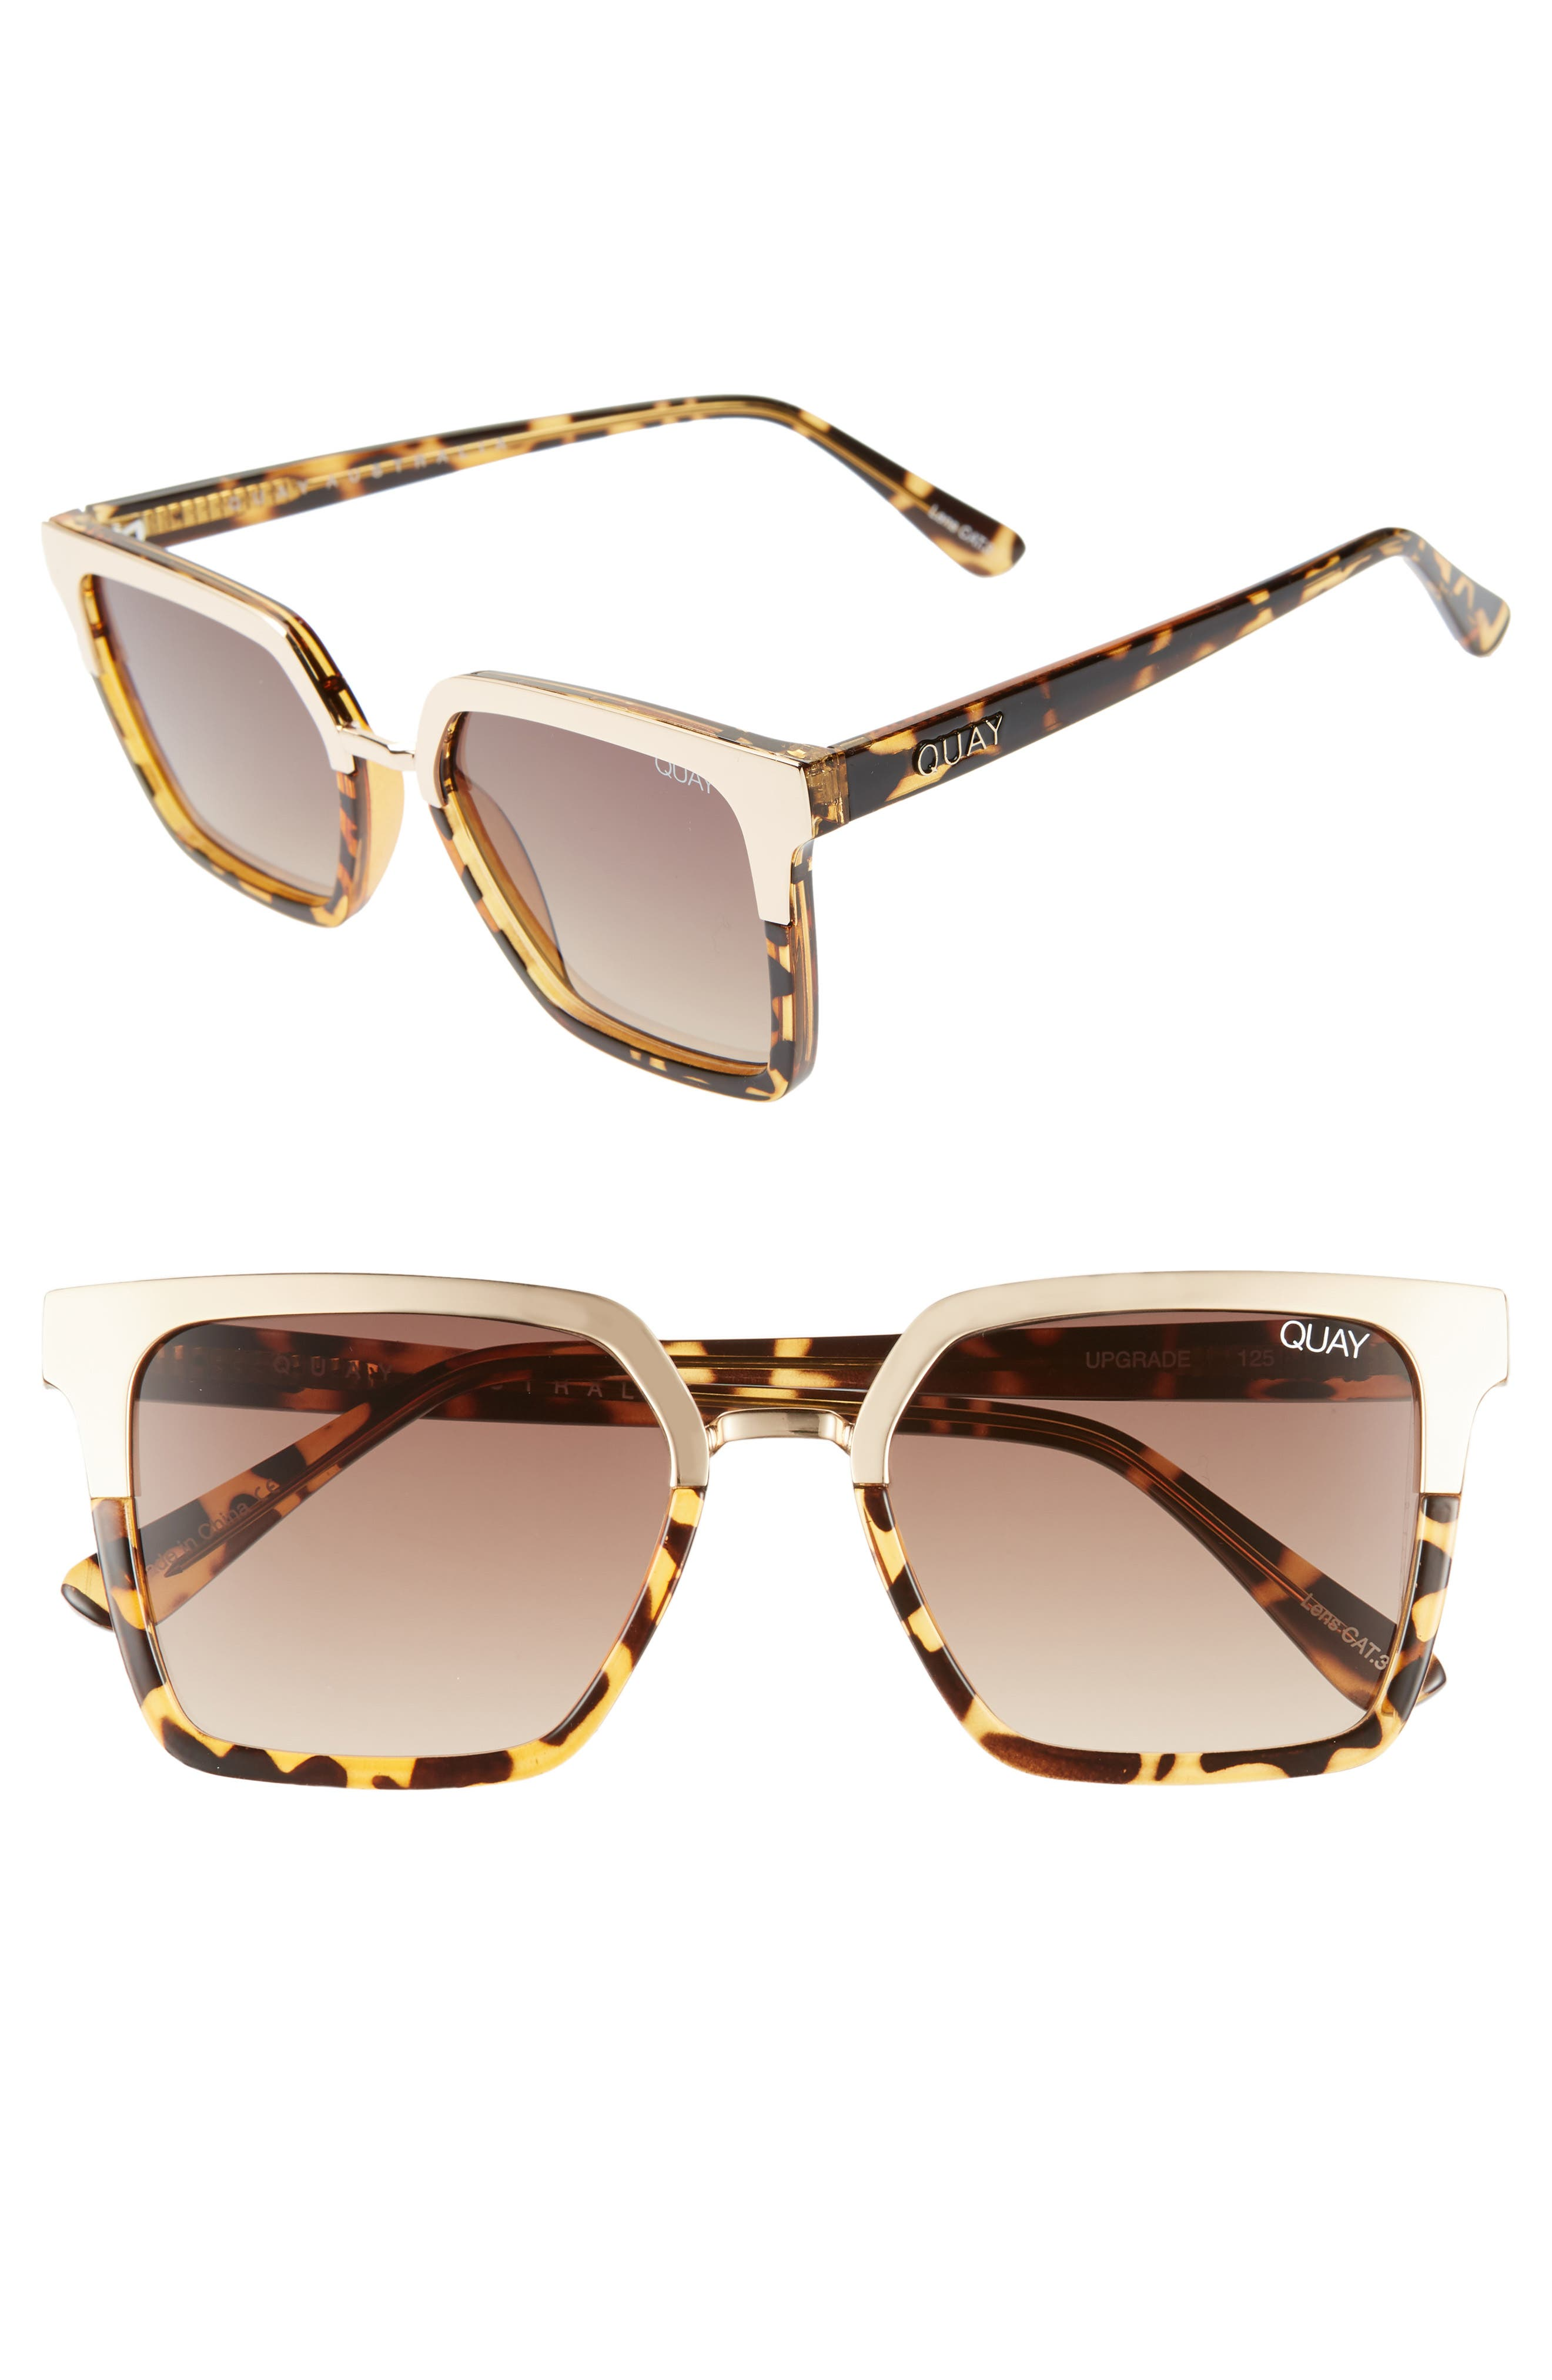 x Jaclyn Hill Upgrade 55mm Square Sunglasses,                             Main thumbnail 1, color,                             TORT GOLD / BROWN